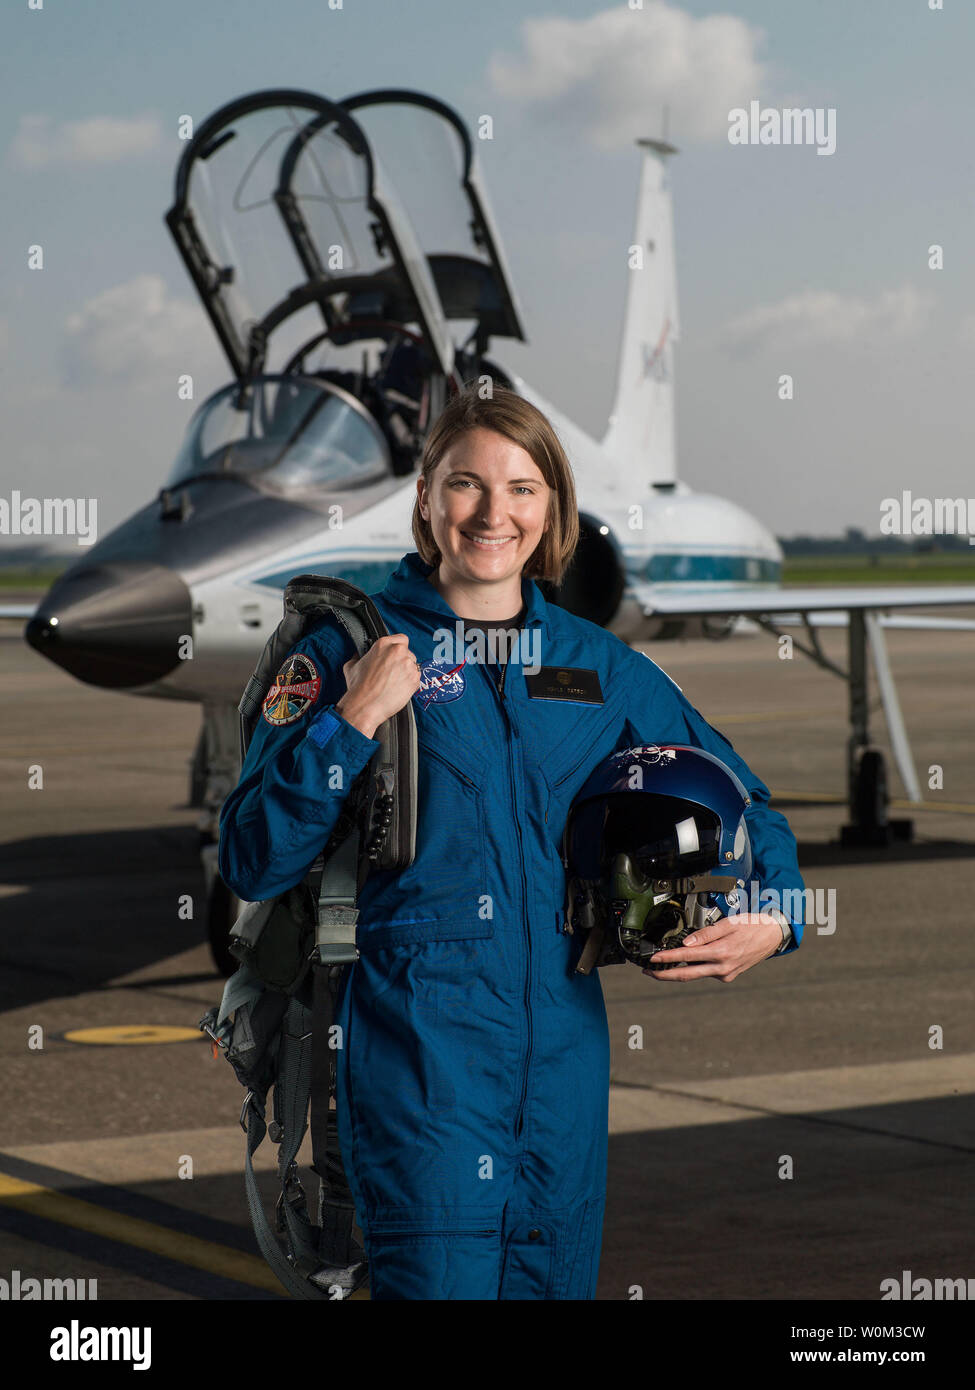 Kayla Barron has been selected by NASA to join the 2017 Astronaut Candidate Class. She will report for duty in August 2017. The Washington native graduated from the U.S. Naval Academy with a Bachelor's degree in Systems Engineering. A Gates Cambridge Scholar, Barron earned a Master's degree in Nuclear Engineering from the University of Cambridge. As a Submarine Warfare Officer, Barron was a member of the first class of women commissioned into the submarine community. NASA Photo by Robert Markowitz/UPI - Stock Image